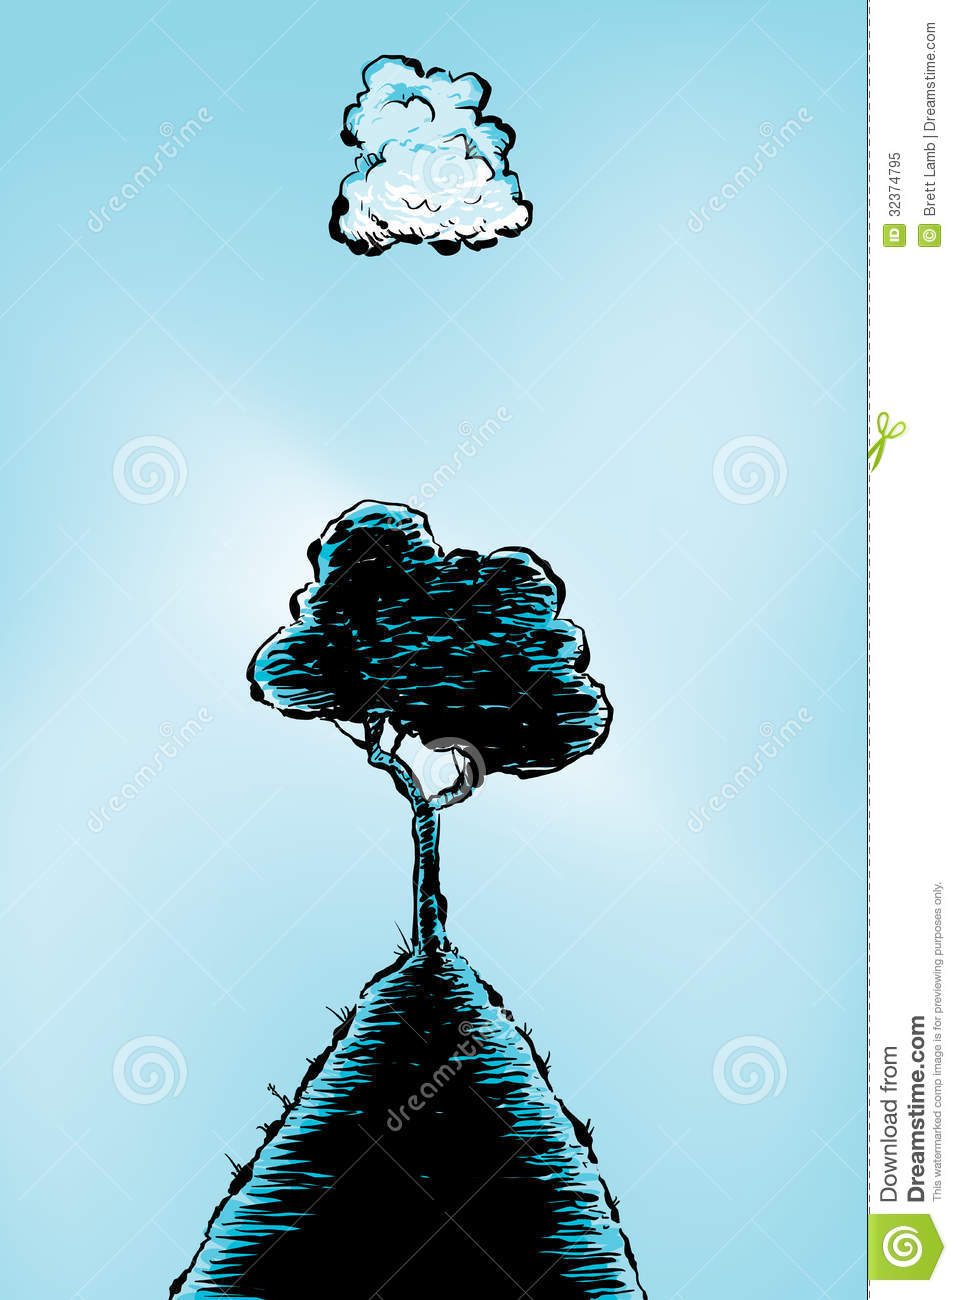 Plans Luxurious Living Furniture besides Fancy Black Round Swingasan Chair With Captivating Red Cushion also B393e4a76655b585 furthermore Royalty Free Stock Photo Cloud Tree Single Cartoon Casts Shadow Over Hill Image32374795 besides White Interior Red Accent Chair. on bedroom chair plans